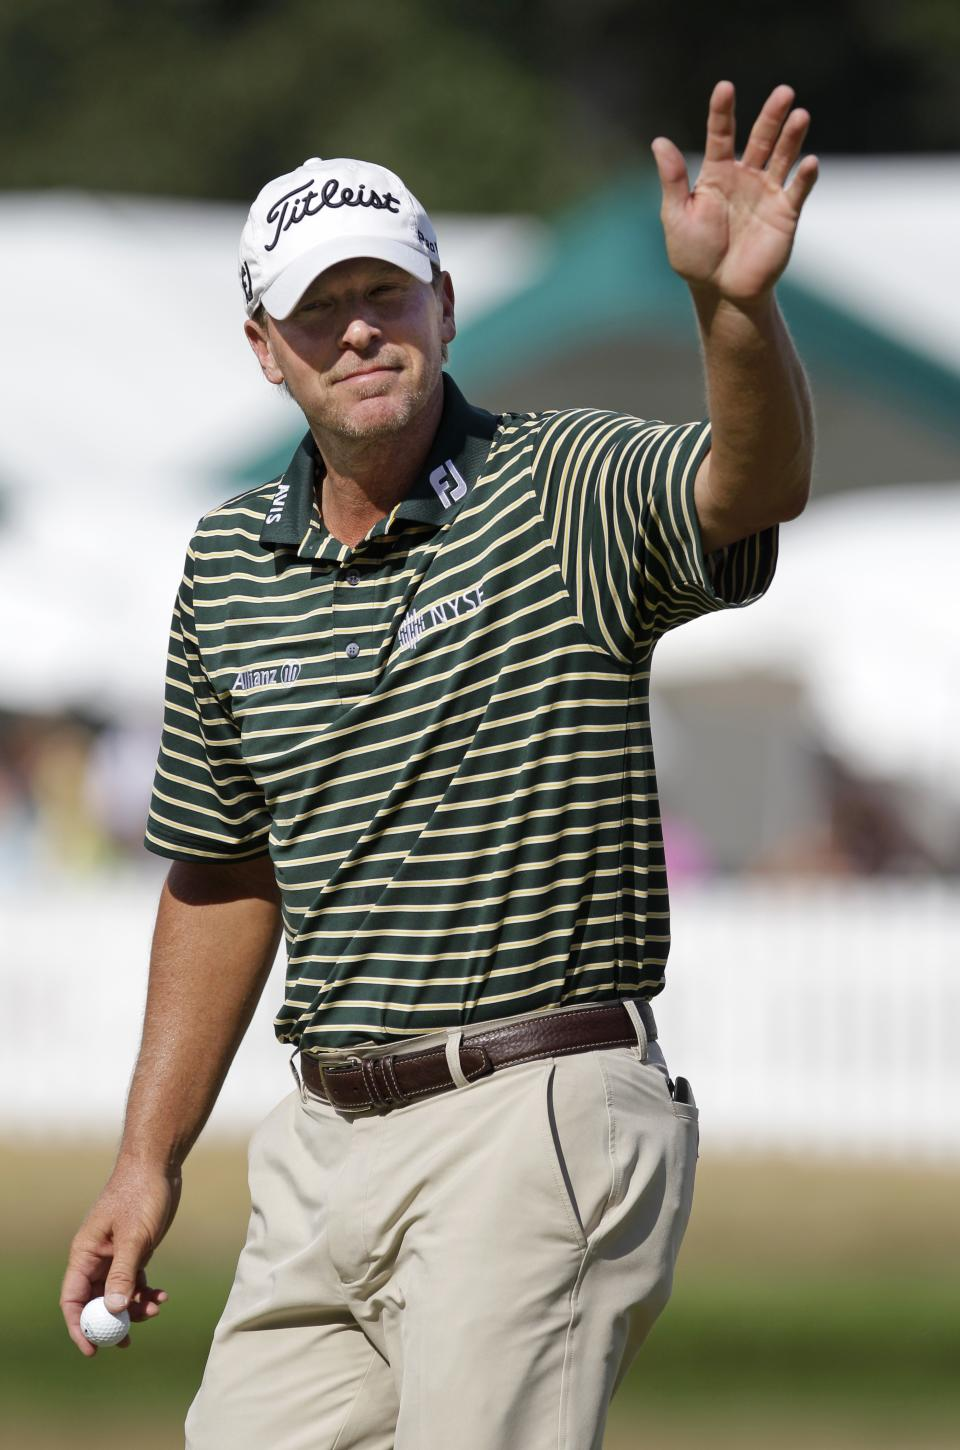 Steve Stricker waves to the crowd as he walks off the 18th green during the final round of the John Deere Classic golf tournament at TPC Deere Run, Sunday, July 15, 2012, in Silvis, Ill. (AP Photo/Charlie Neibergall)